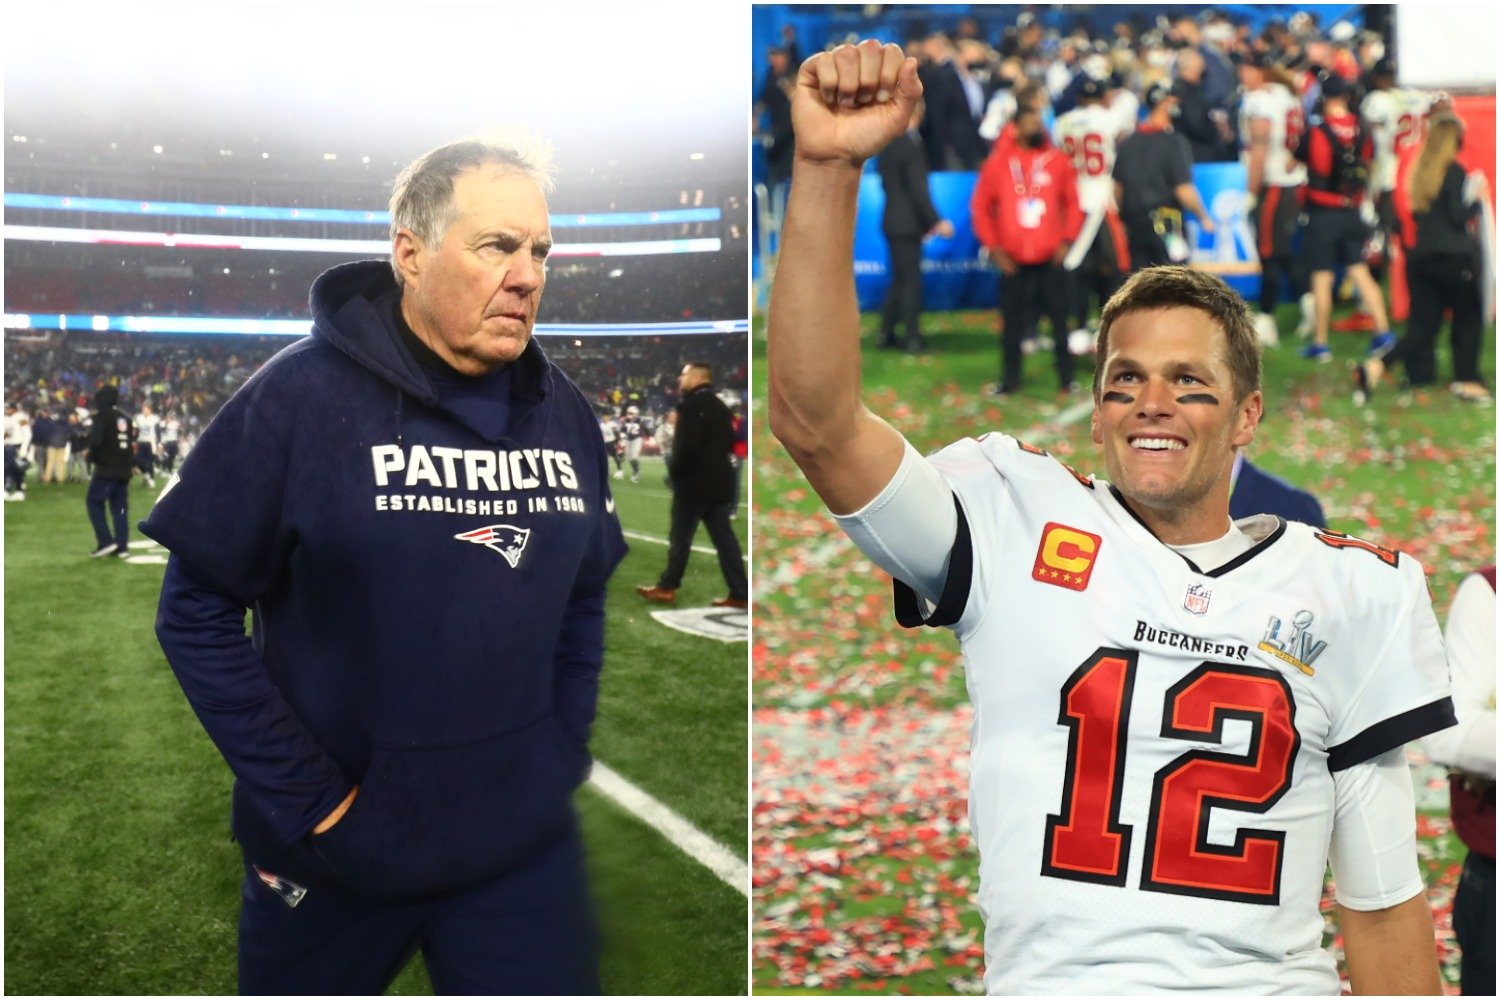 Tom Brady made Bill Belichick's worst nightmare come true by leading the Buccaneers to a lopsided win in Super Bowl 55 that also earned him a $500,000 bonus.